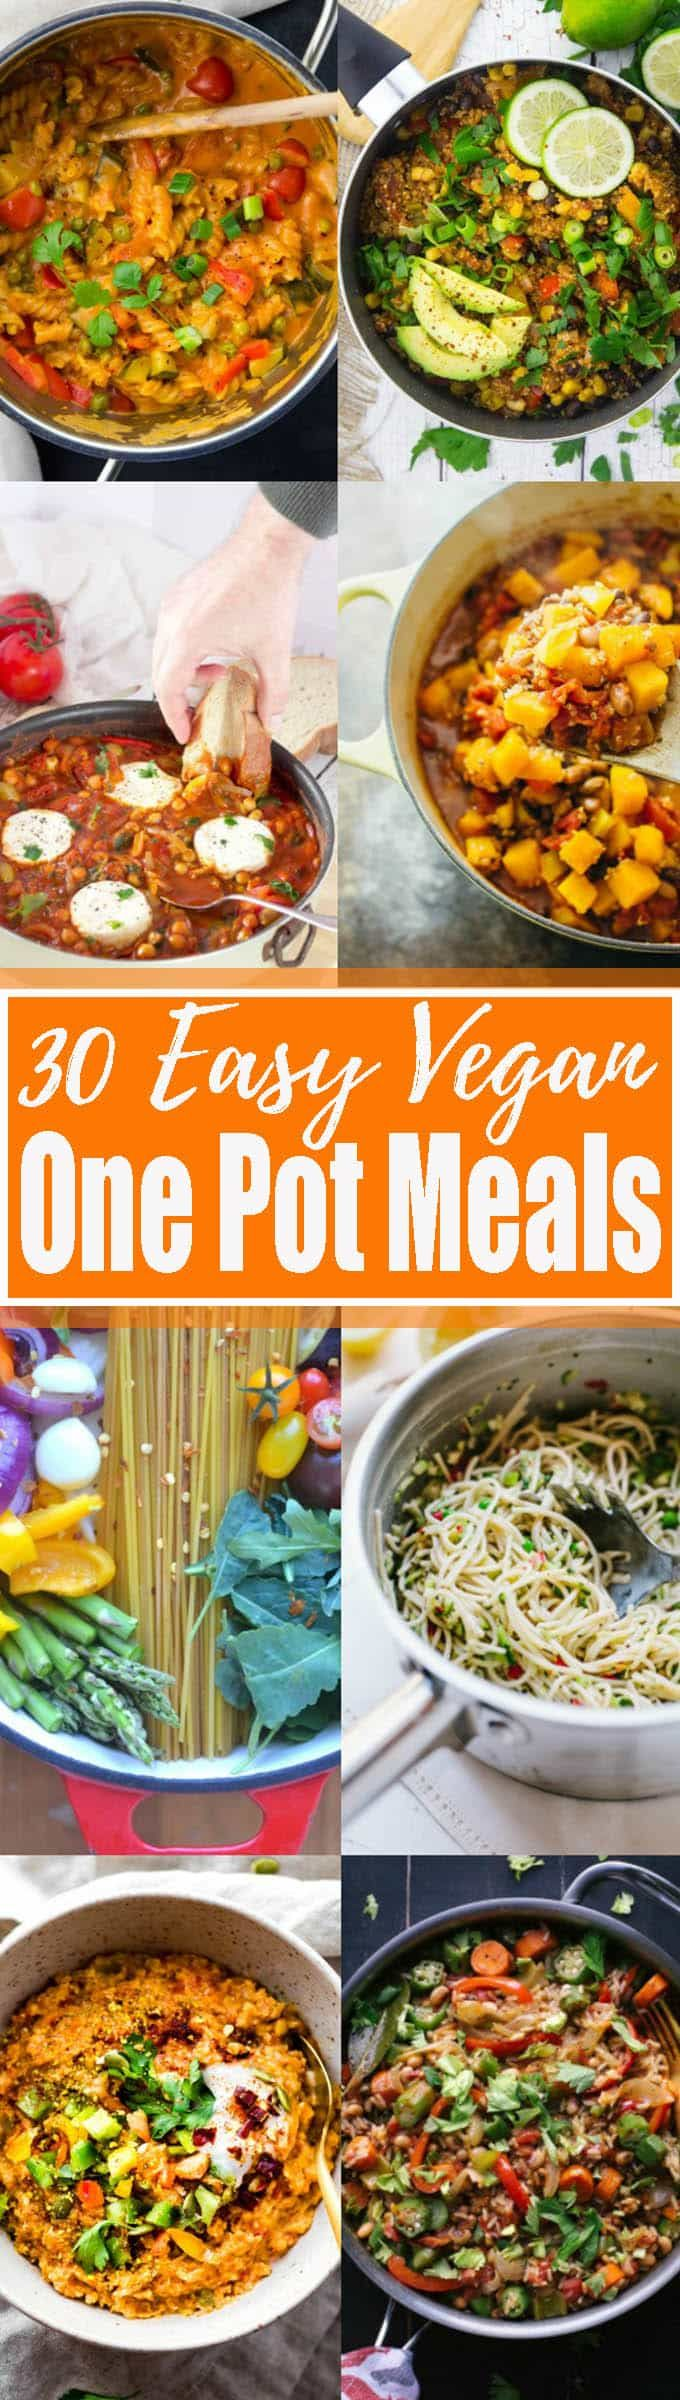 Oh, how I love one pot recipes! These 30 easy vegan one pot meals are perfect for busy days! All of these vegetarian recipes are complete meals that are made in only one cooking vessel. This is not only super easy but it also means less washing-up! Find more vegan recipes at veganheaven.org <3